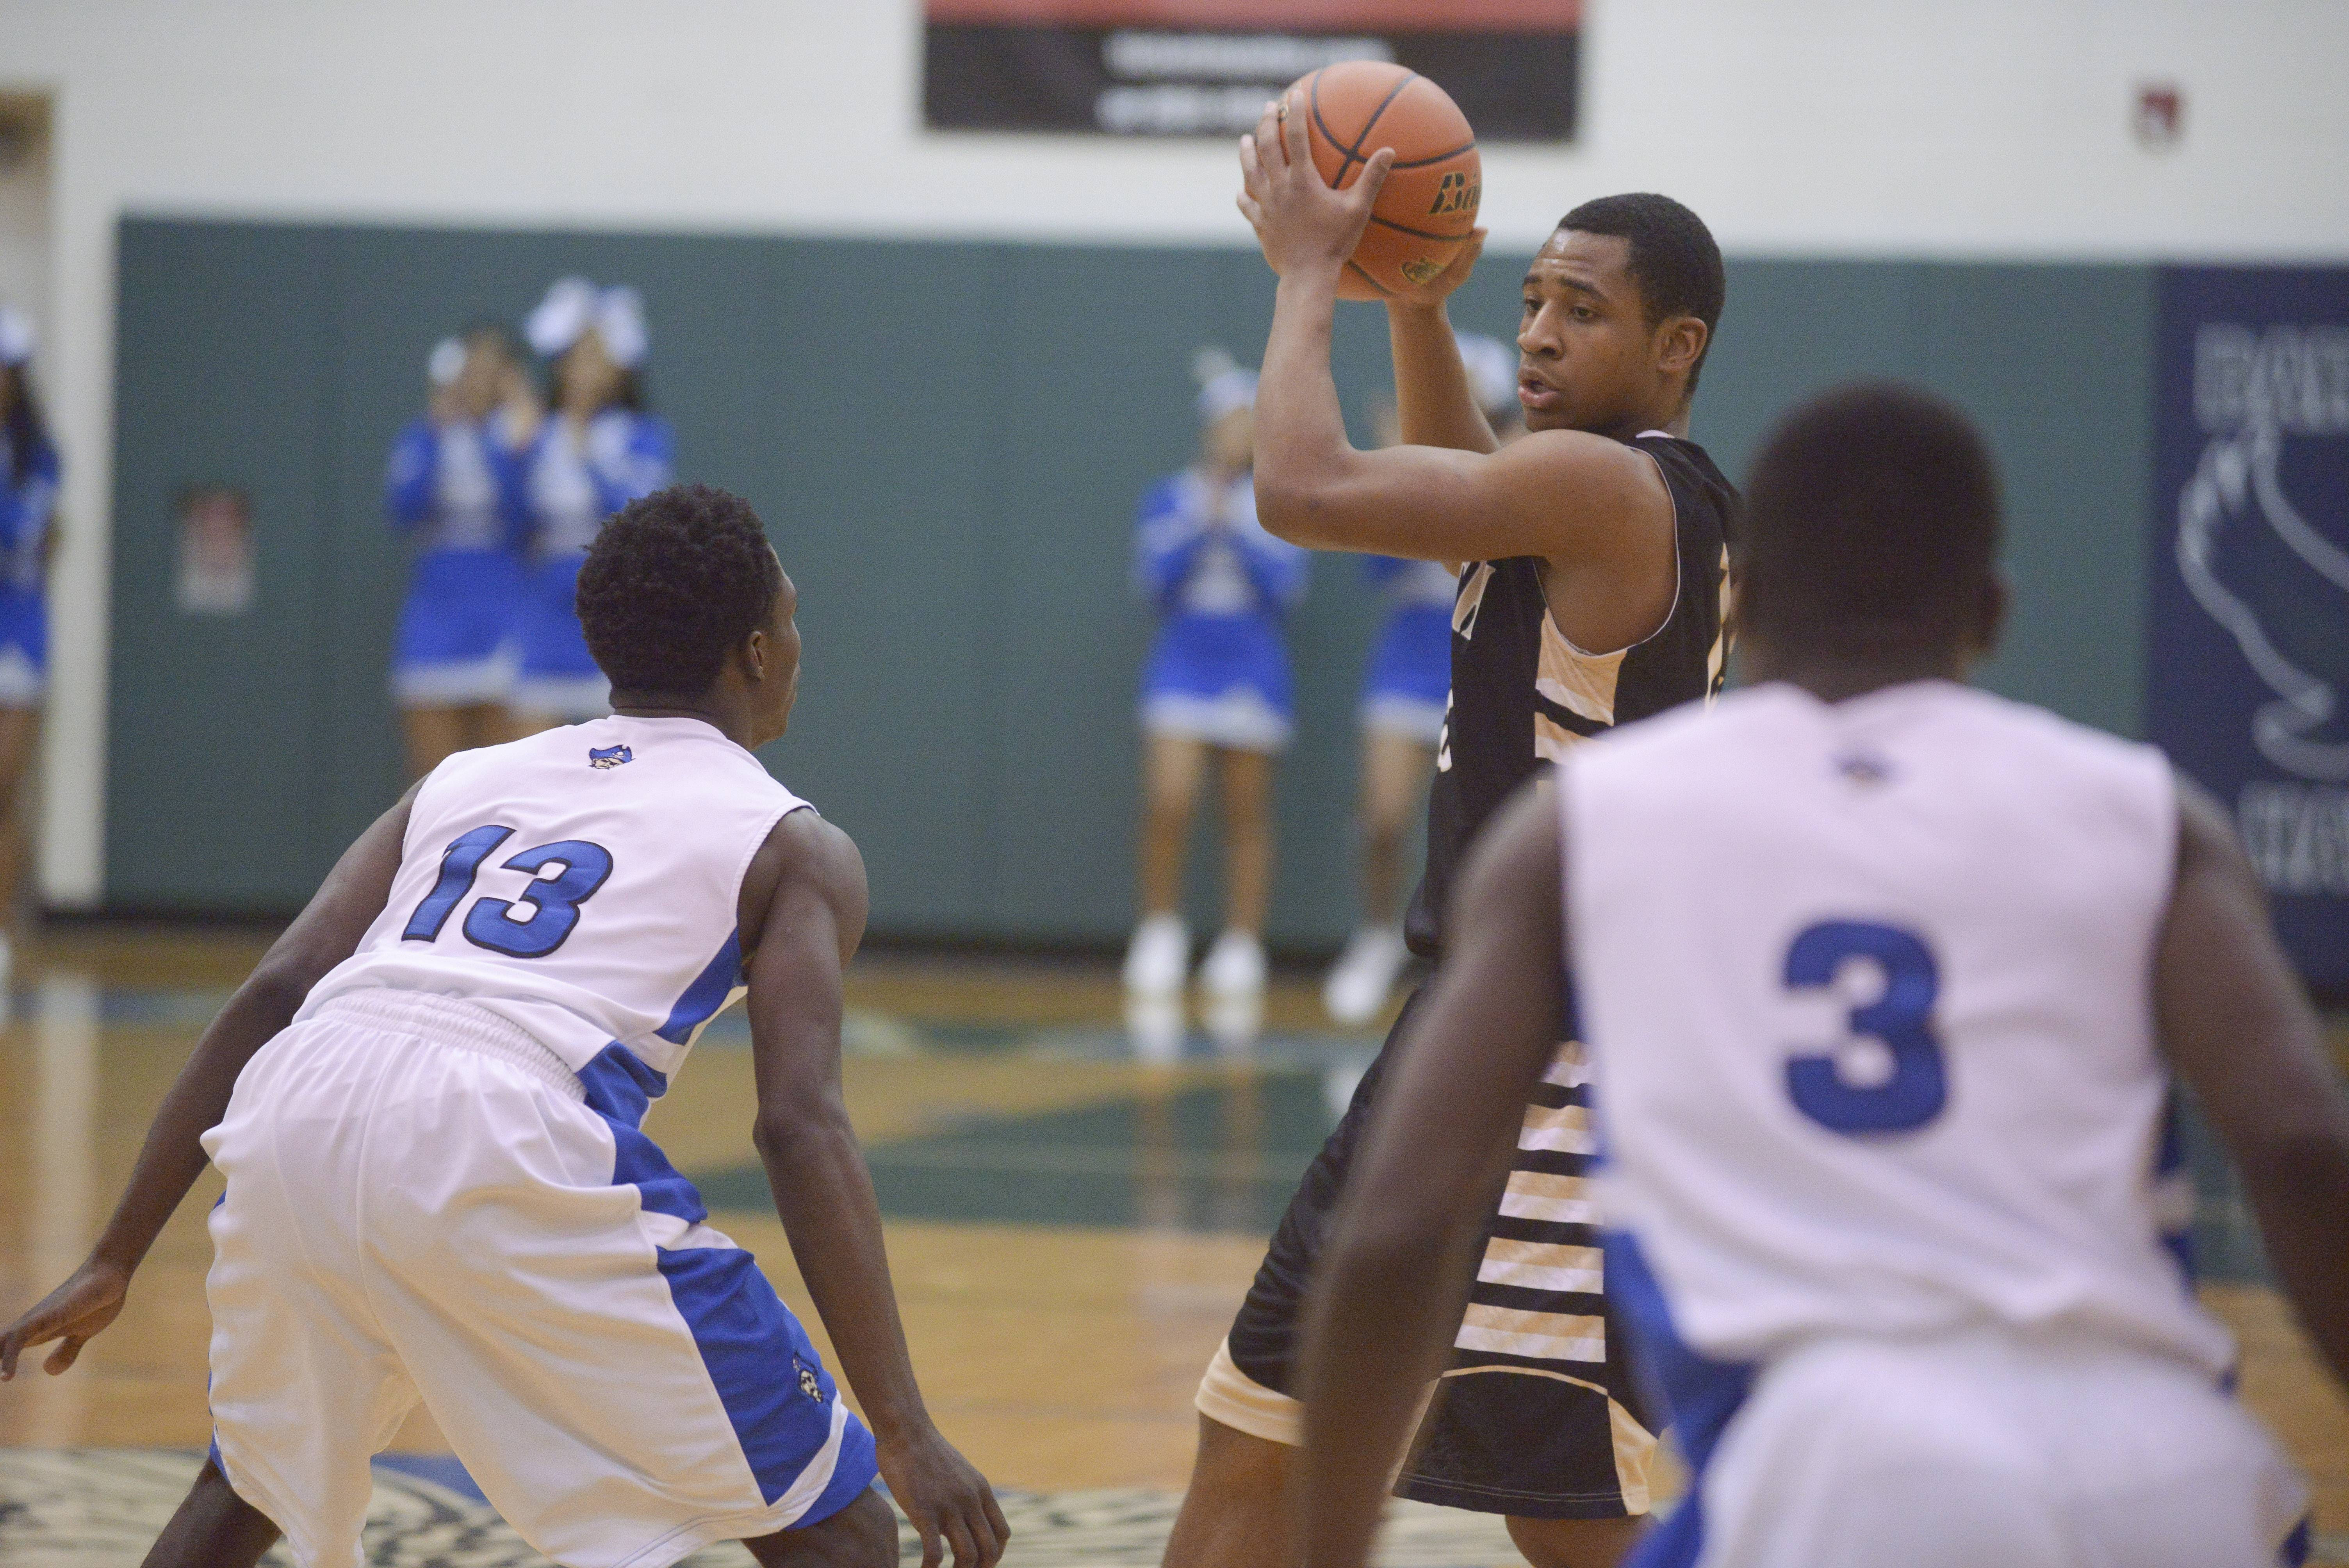 Glenbard North played Proviso East Wednesday, March 12 at Bartlett High School in sectional semifinal action.